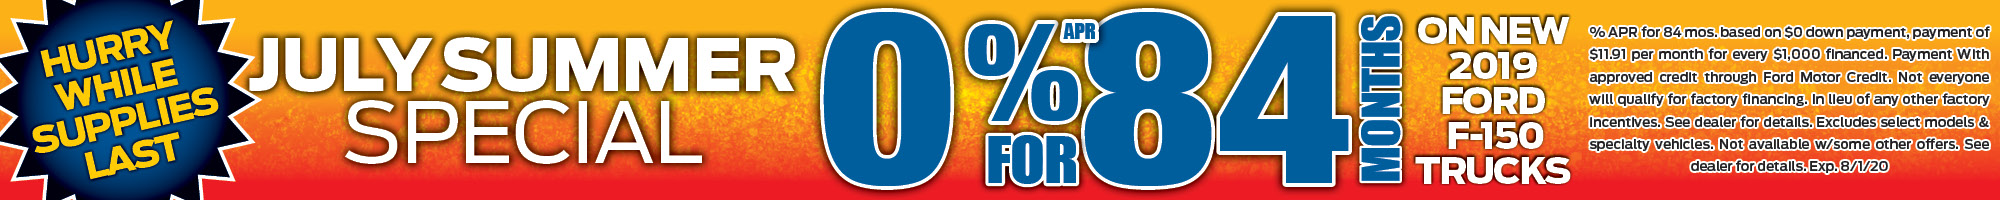 0%apr for 84 months financing special